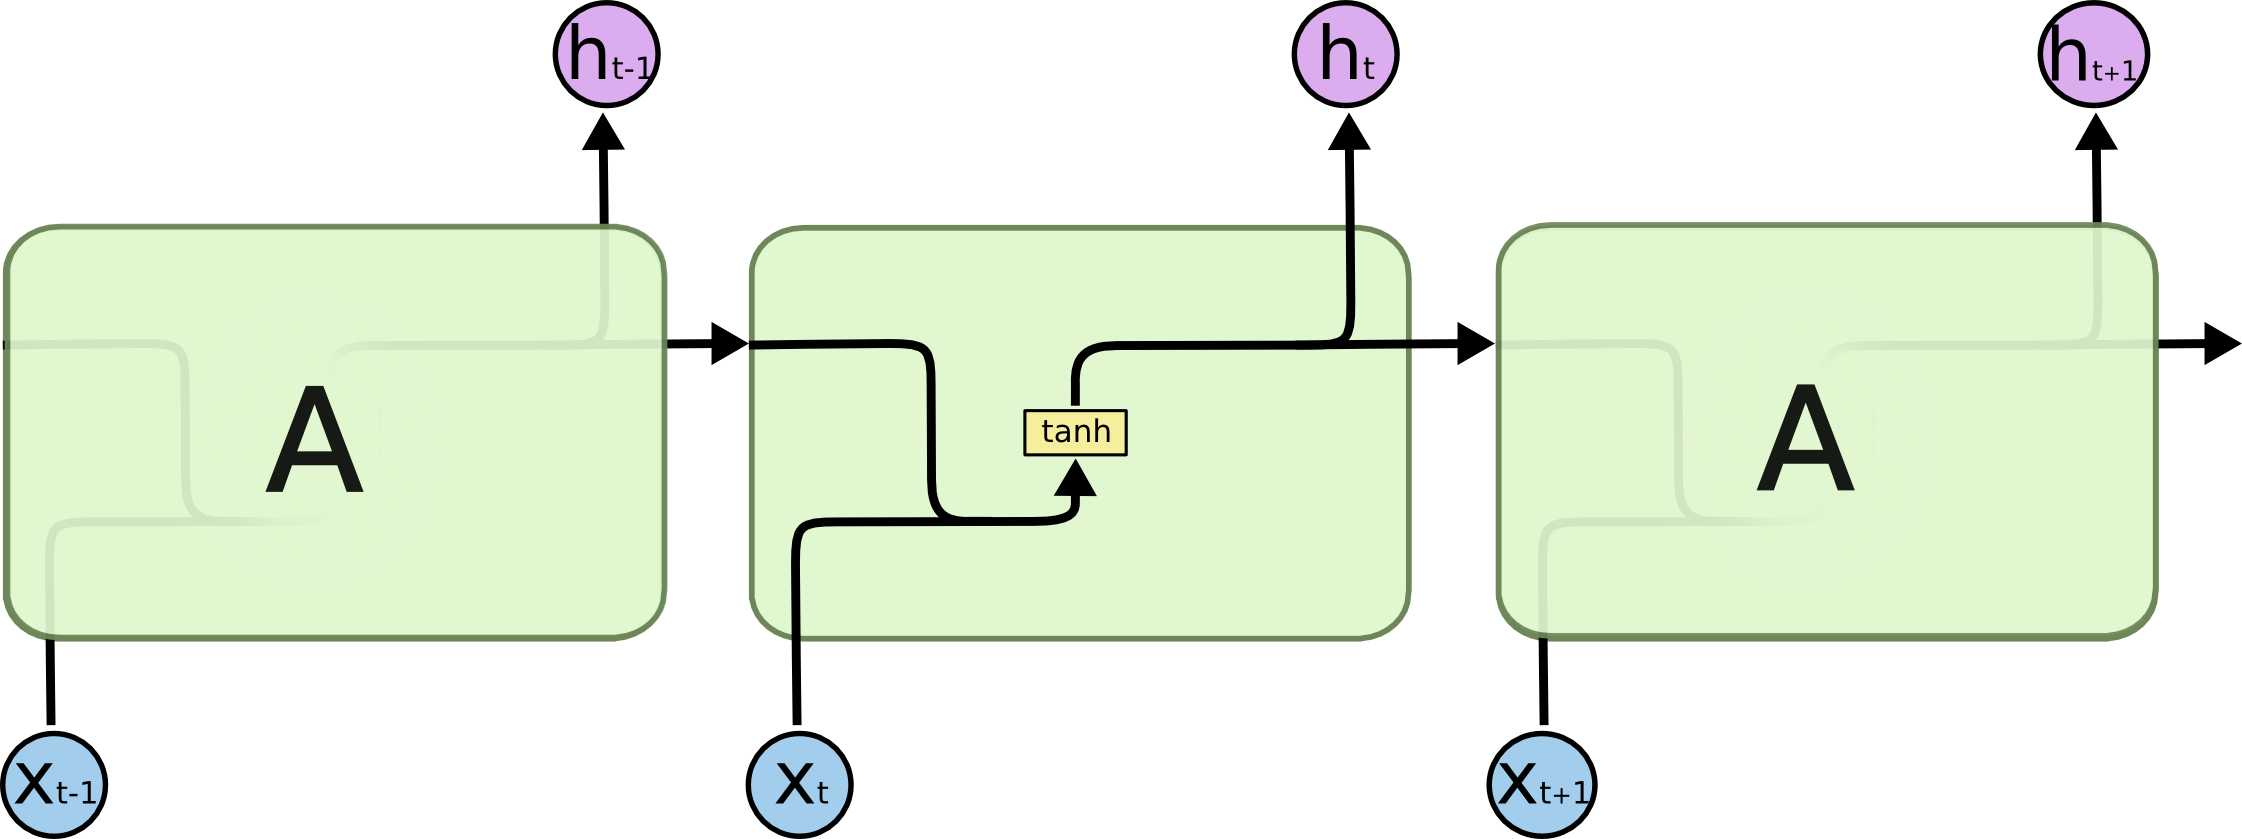 The repeating module in a standard RNN contains a single layer.